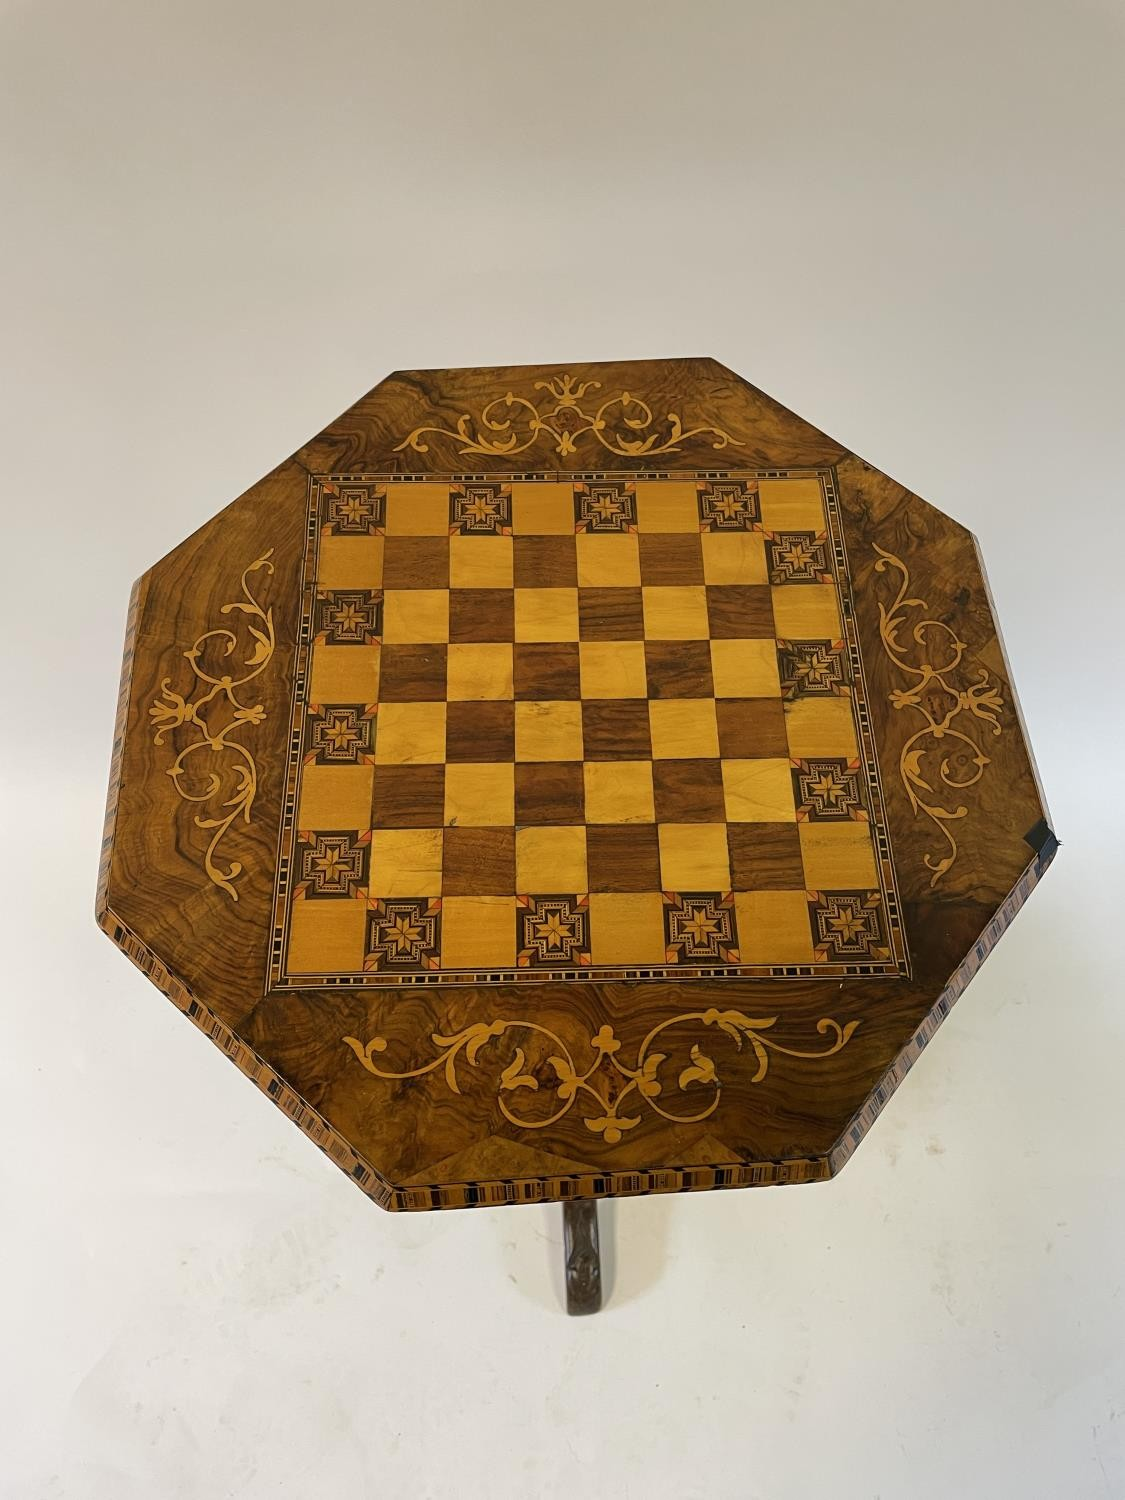 A 19th century walnut work table, the top inlaid for chess, 44 cm wide - Image 2 of 3